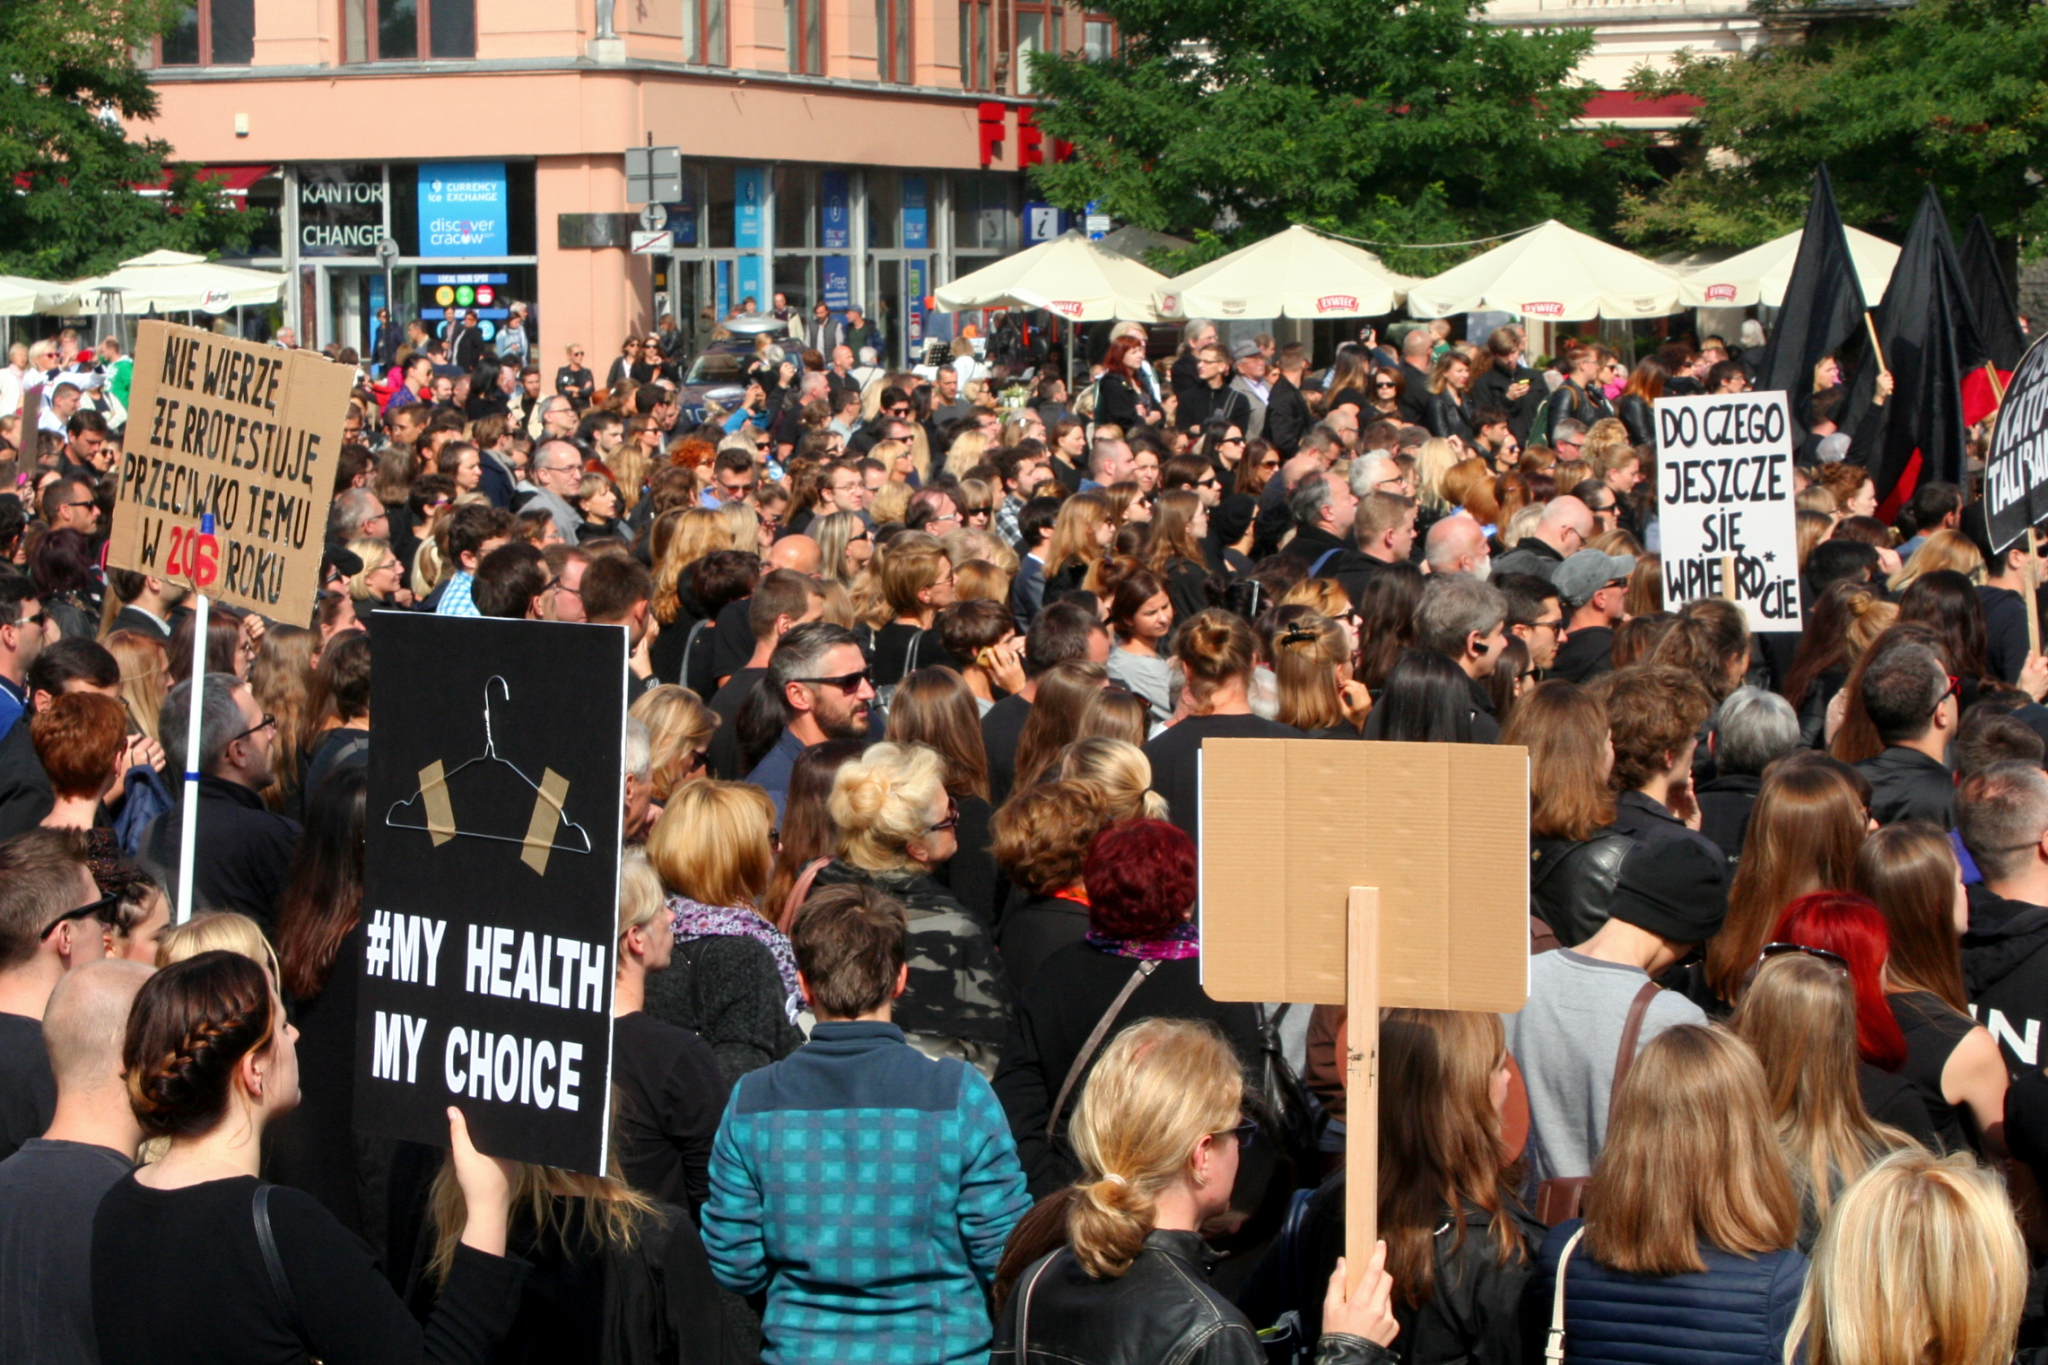 2016-09-25-krakow-anti-abortion-demonstration-25